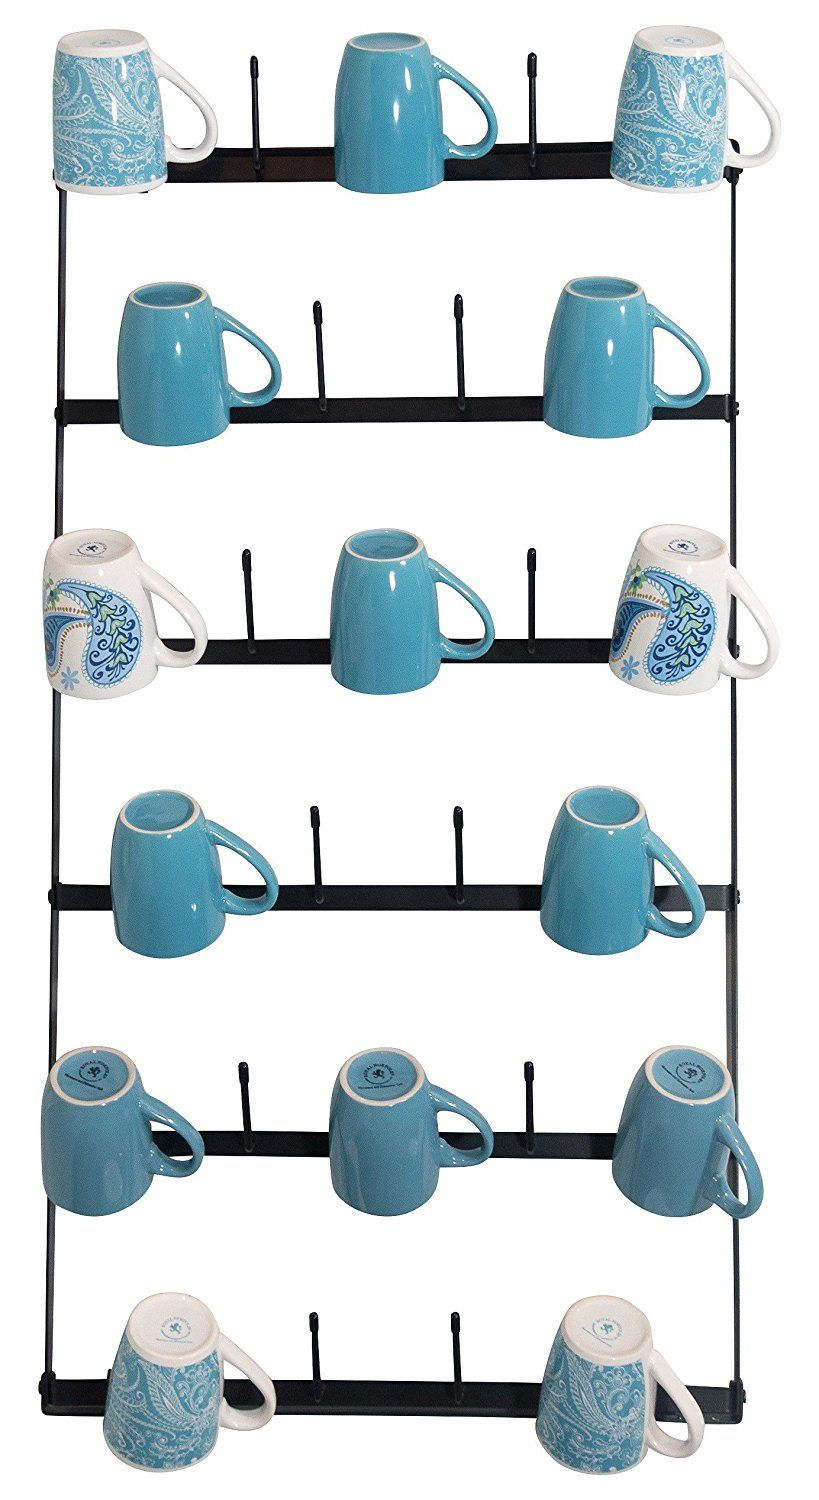 Wall Mounted Mug Rack 6 Row Metal Storage Display